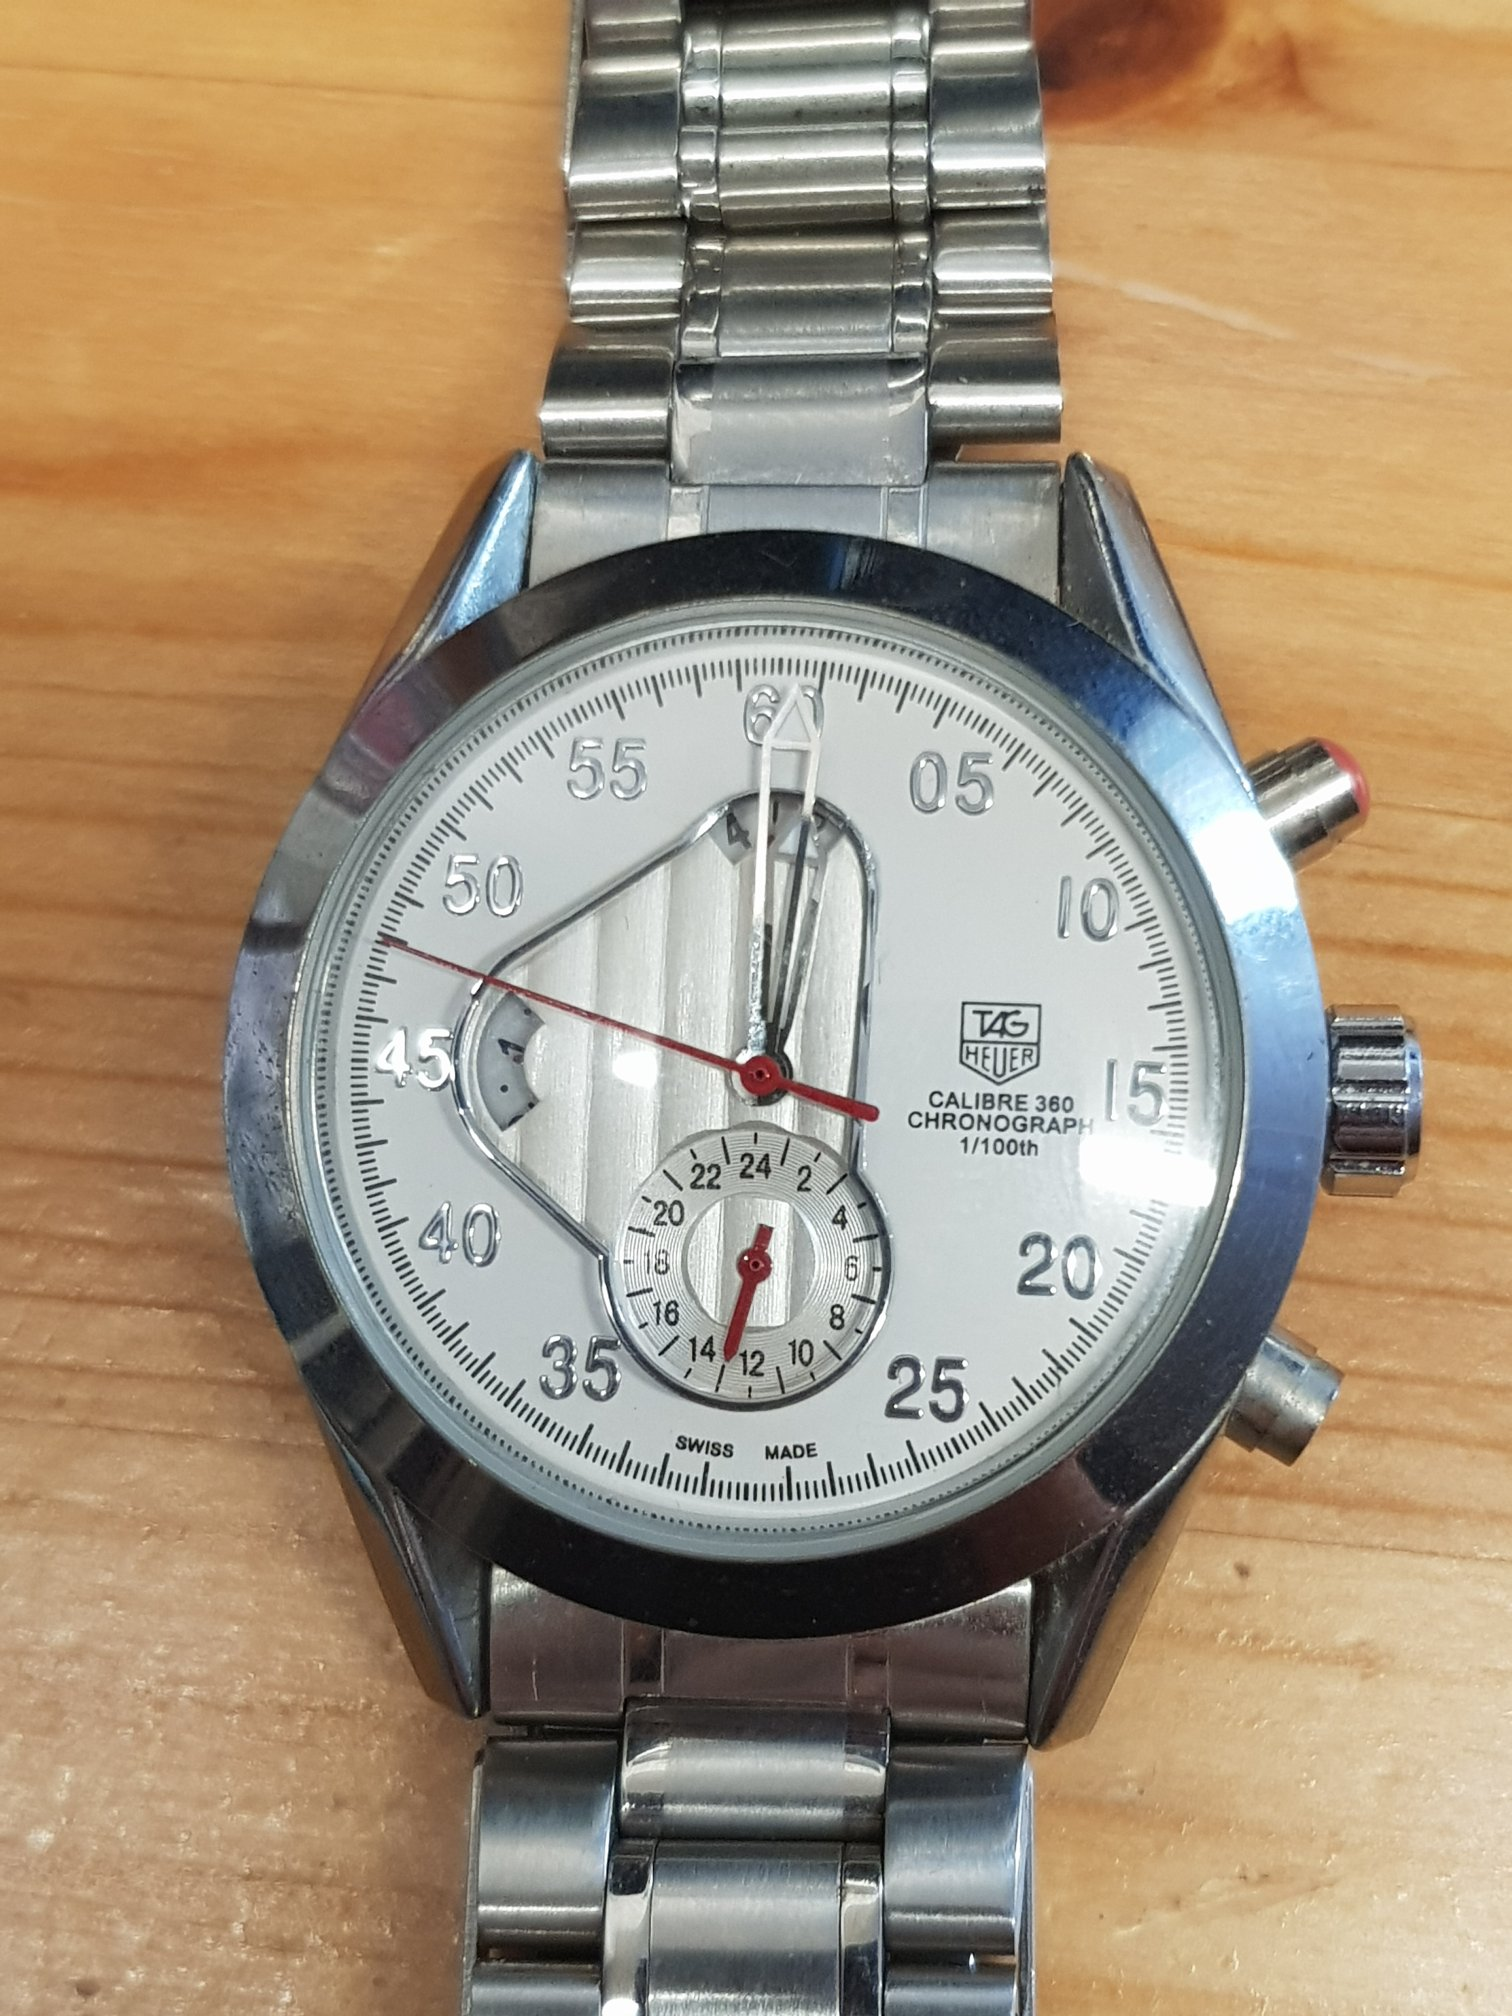 Tagheuer Carrera 2005 dismantled (beyond repair)